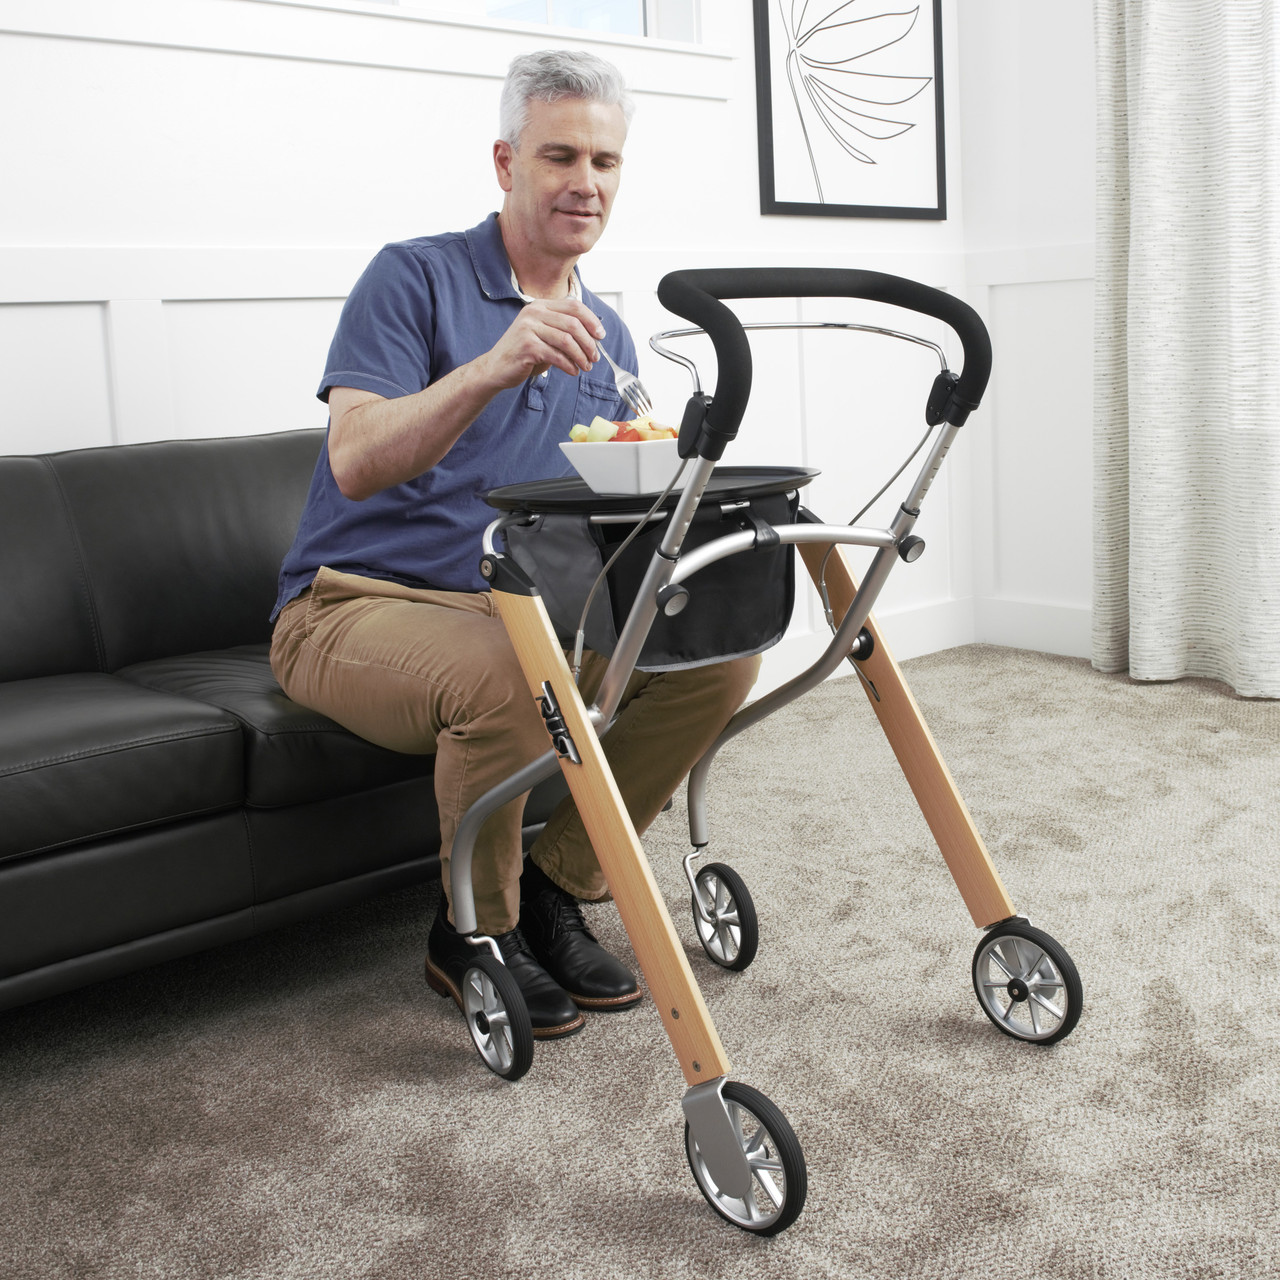 Let's Go Indoor Rollator perfect for transporting meals